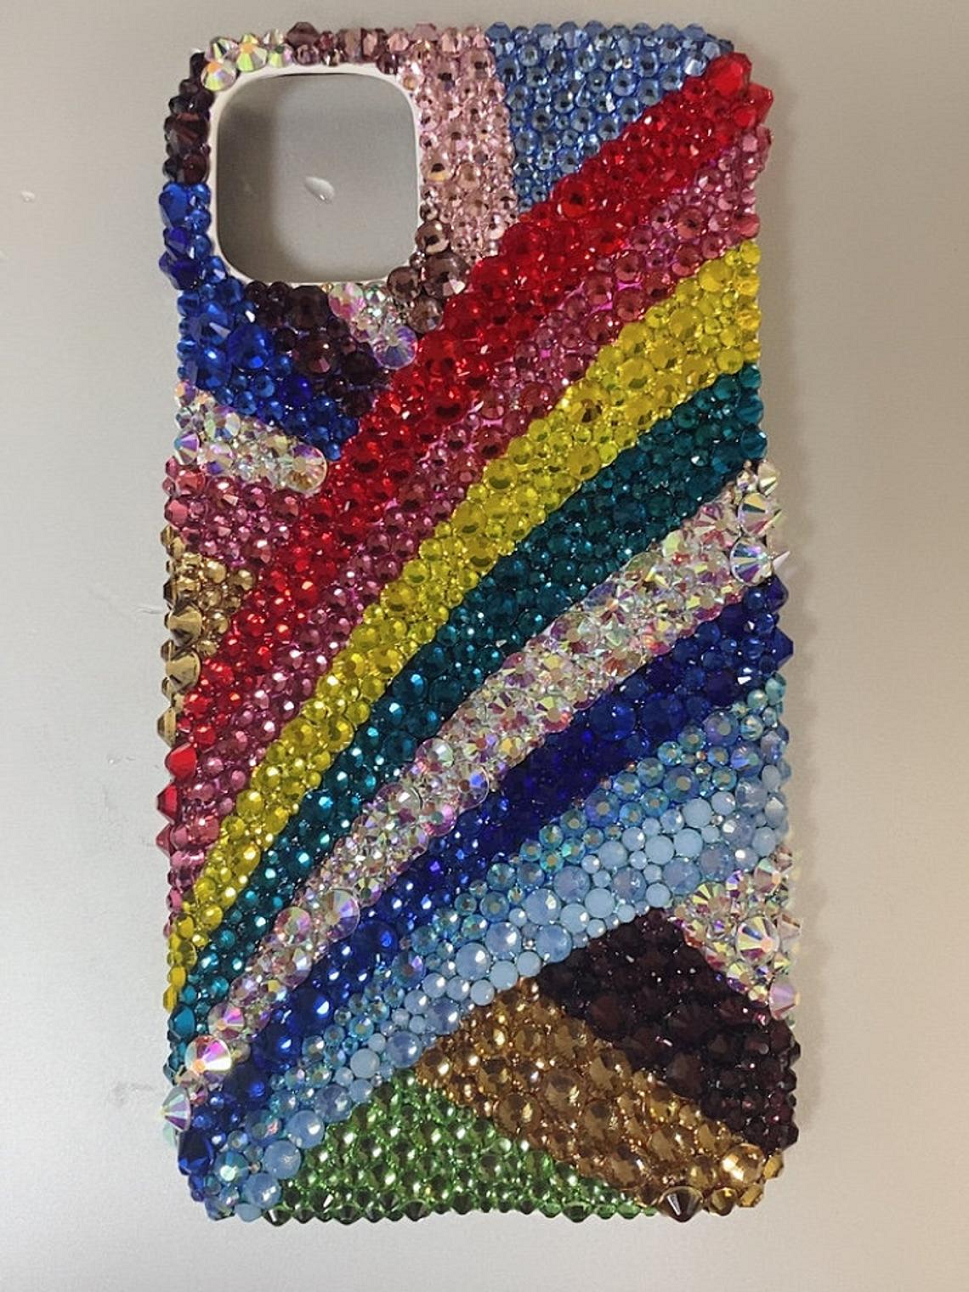 Best Cellphone Case Bling 2021:  Luxury Handcarft Bling Out Phone Case with Swarovski Multi-Color Crystal